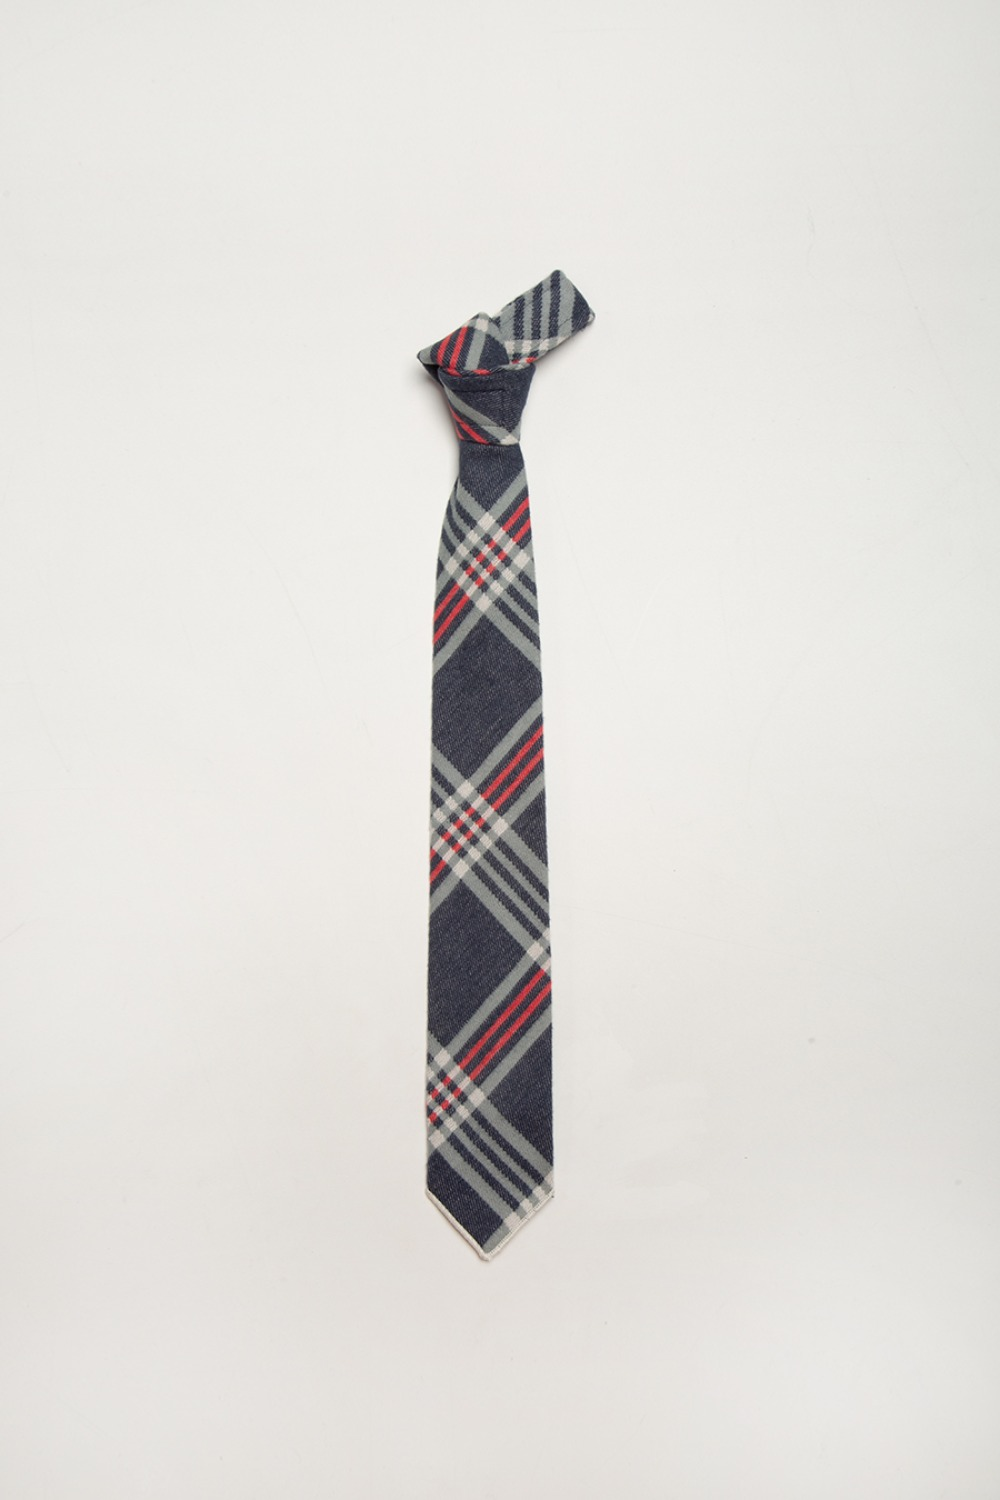 NECK TIE NAVY TEAL RED BIG PLAID